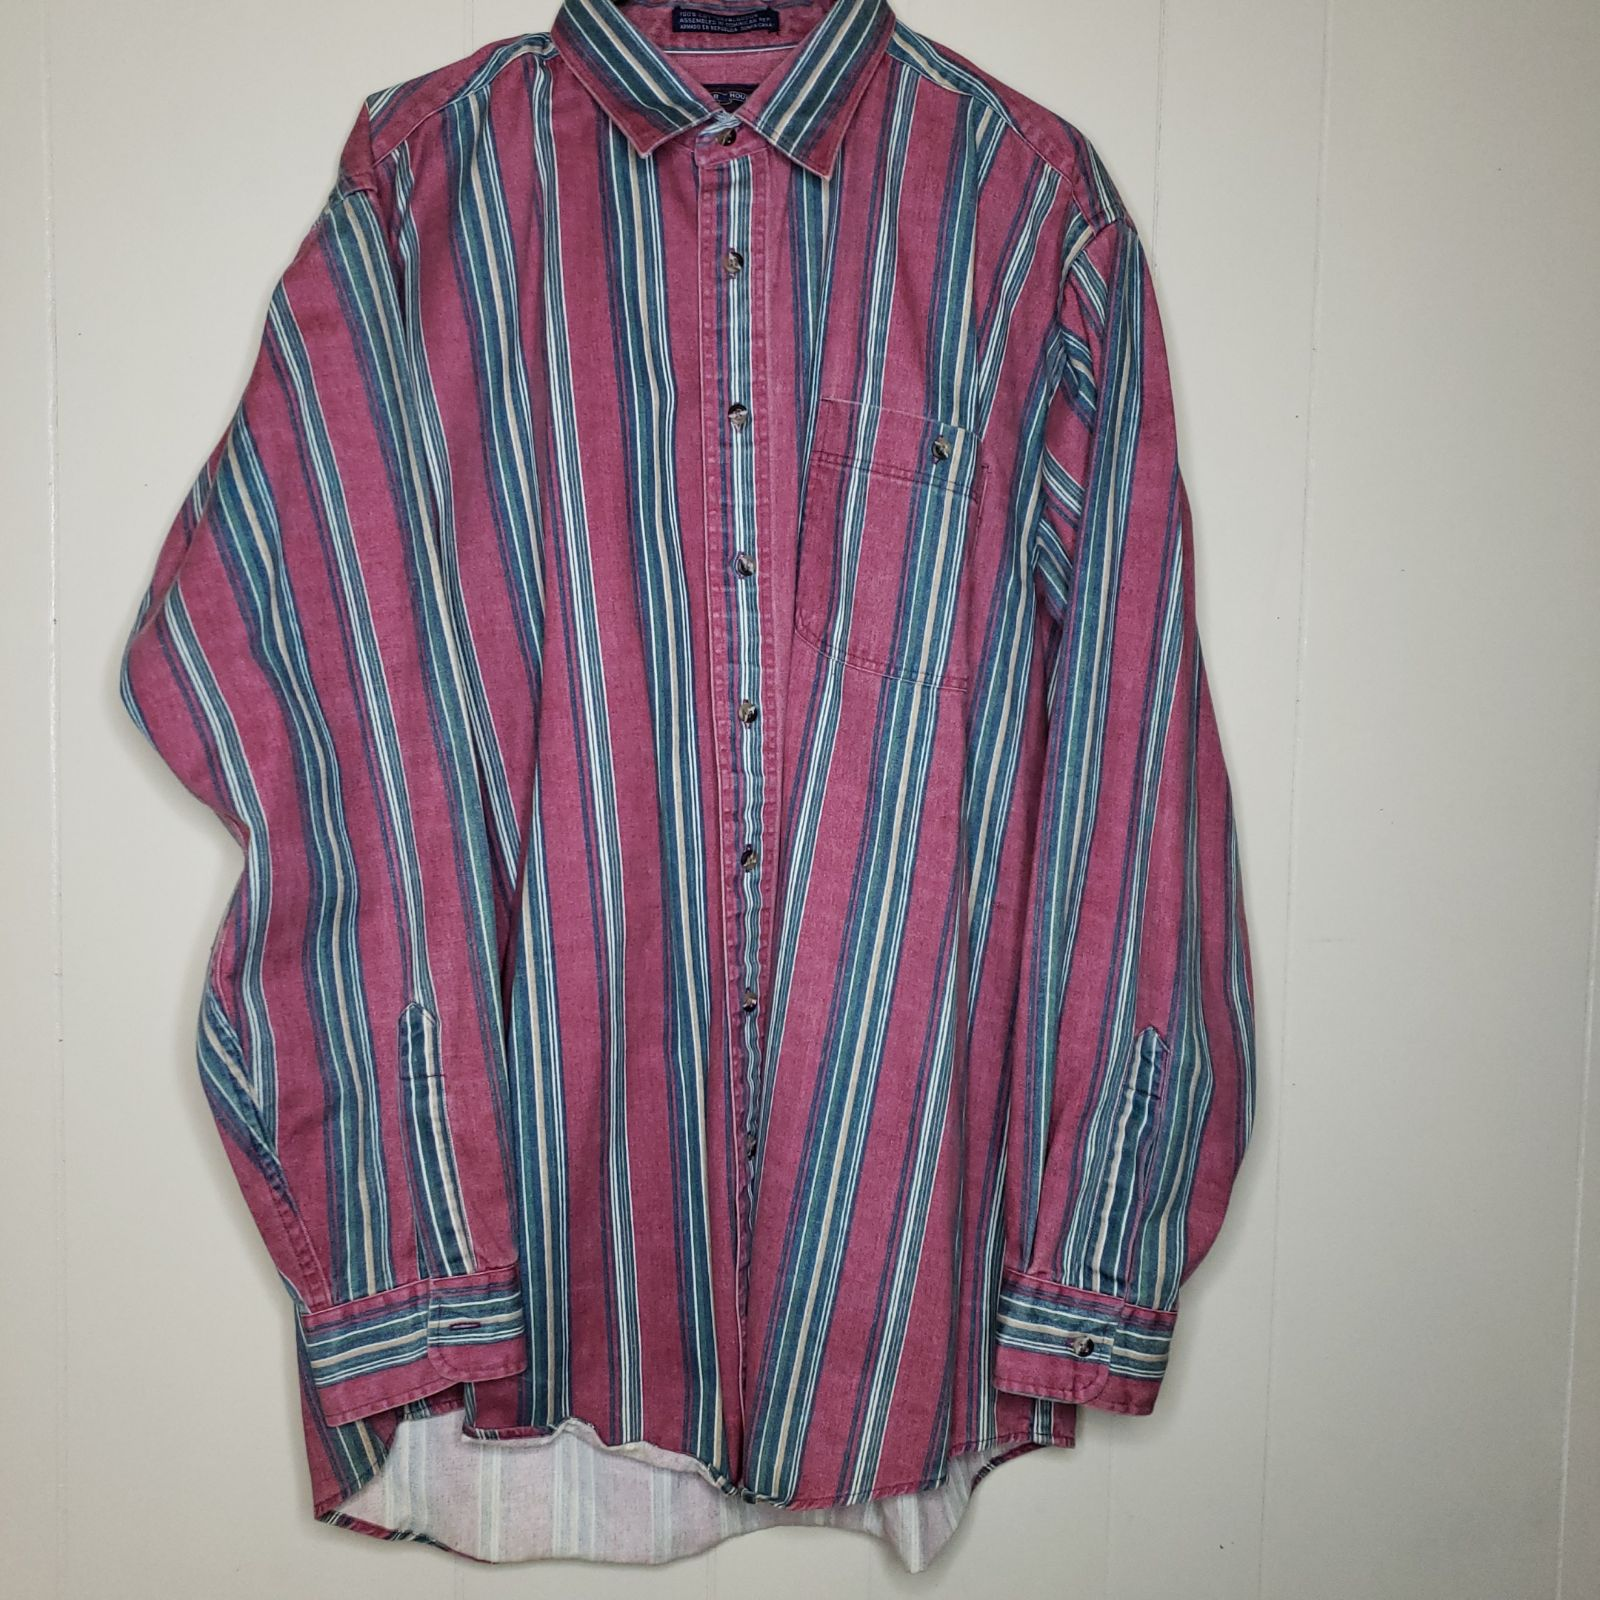 Vintage Members Only Oversized Shirt